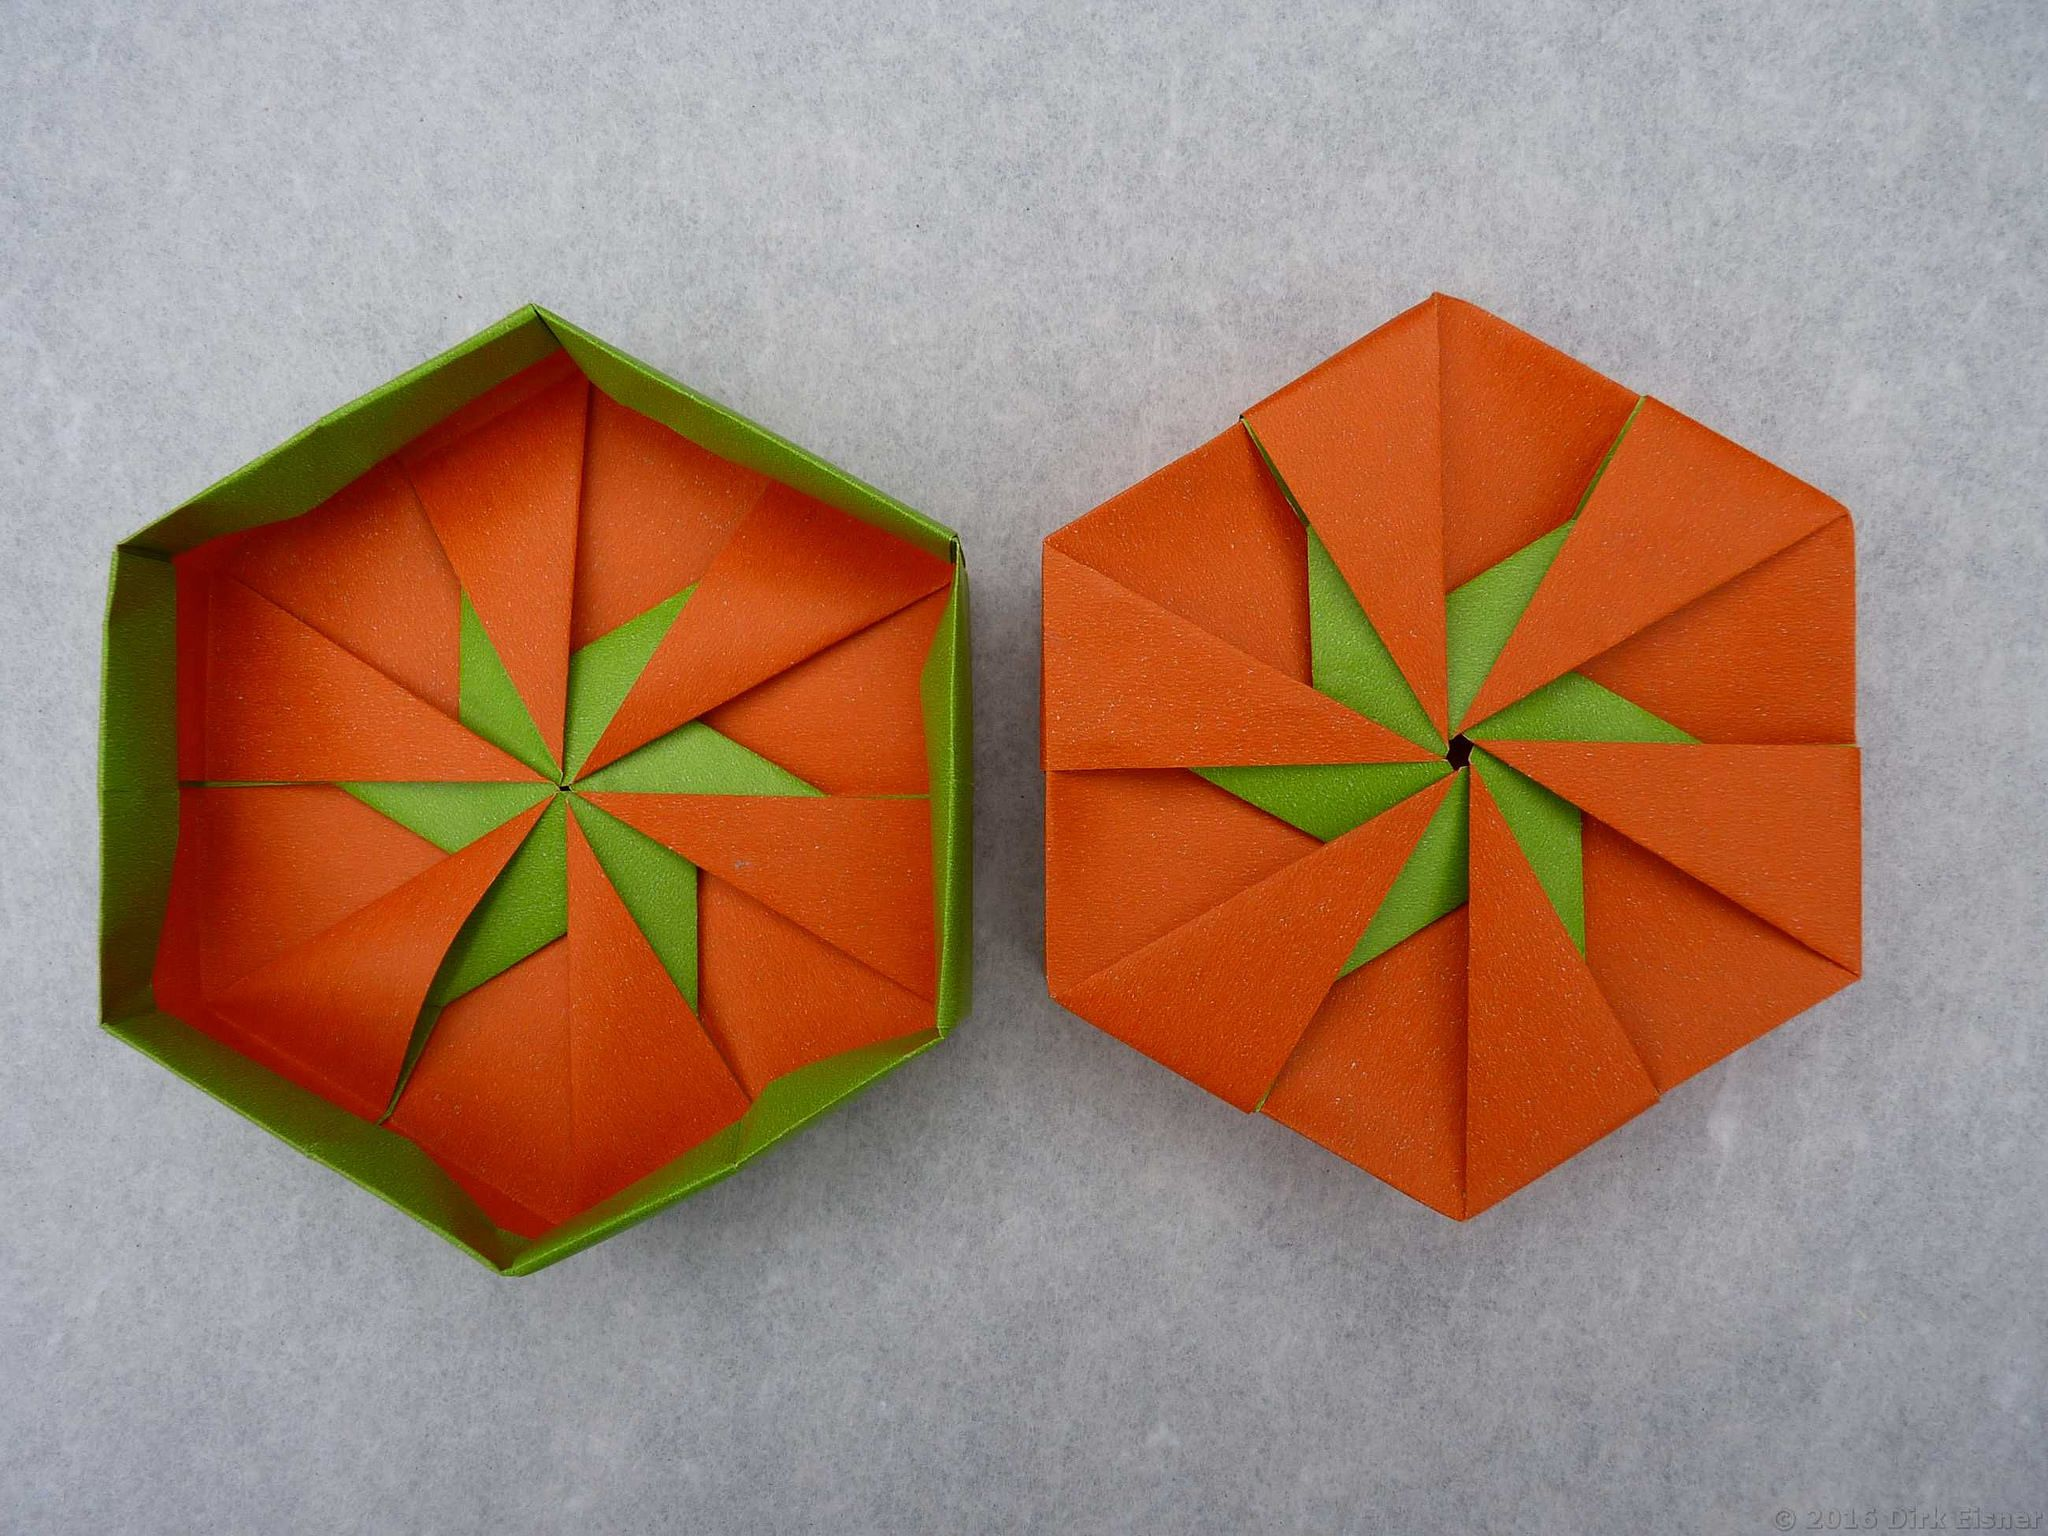 Snowflake Box Francis Ow Other Sides Origami Box Diy Origami Origami Box Tutorial